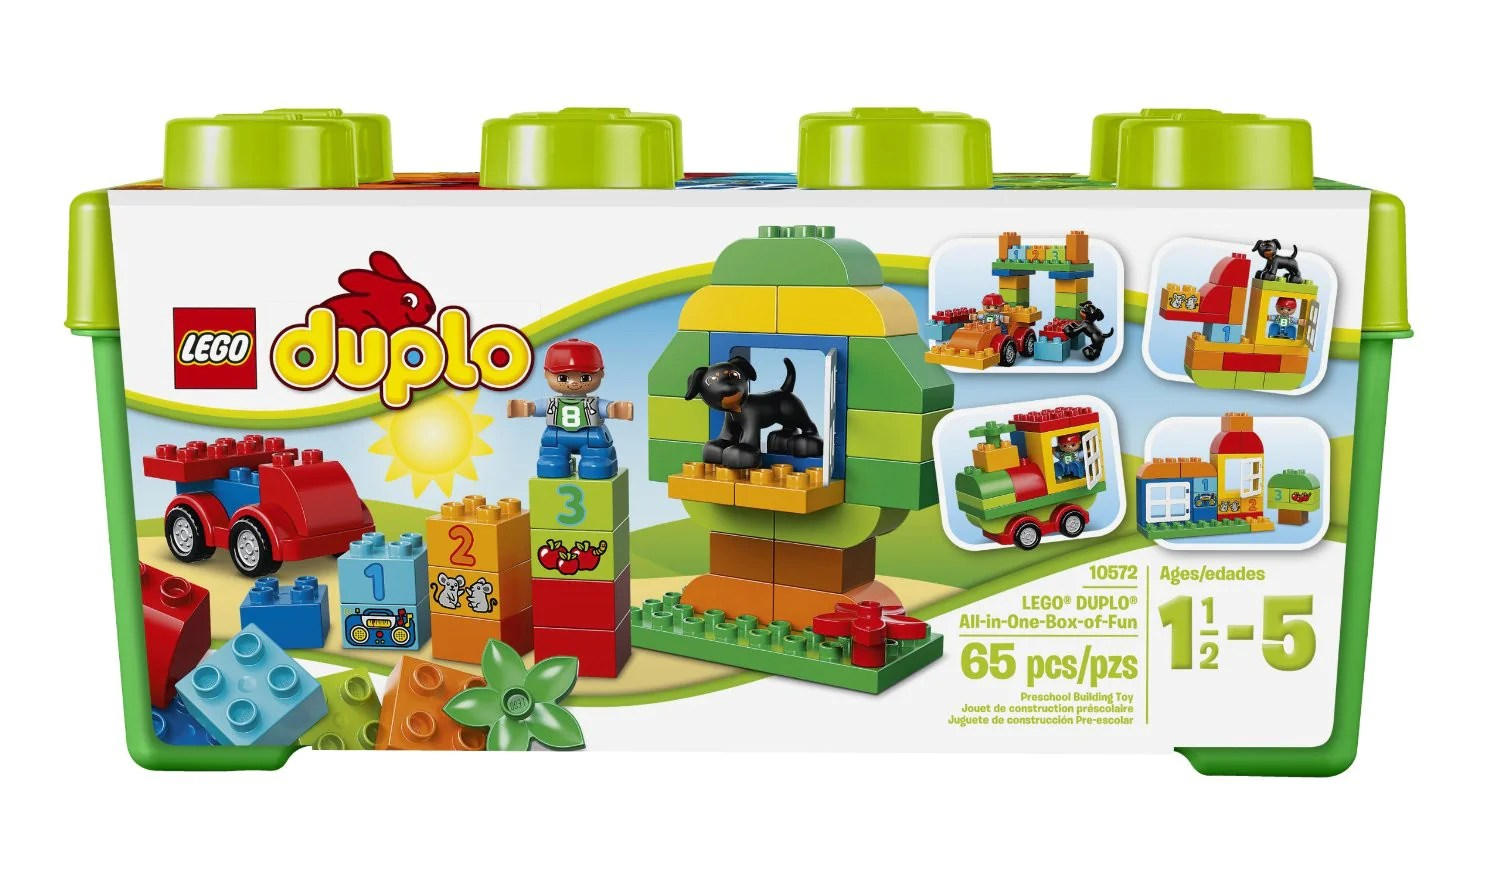 Lego Duplo Creative Play All In One Box Of Fun 10572